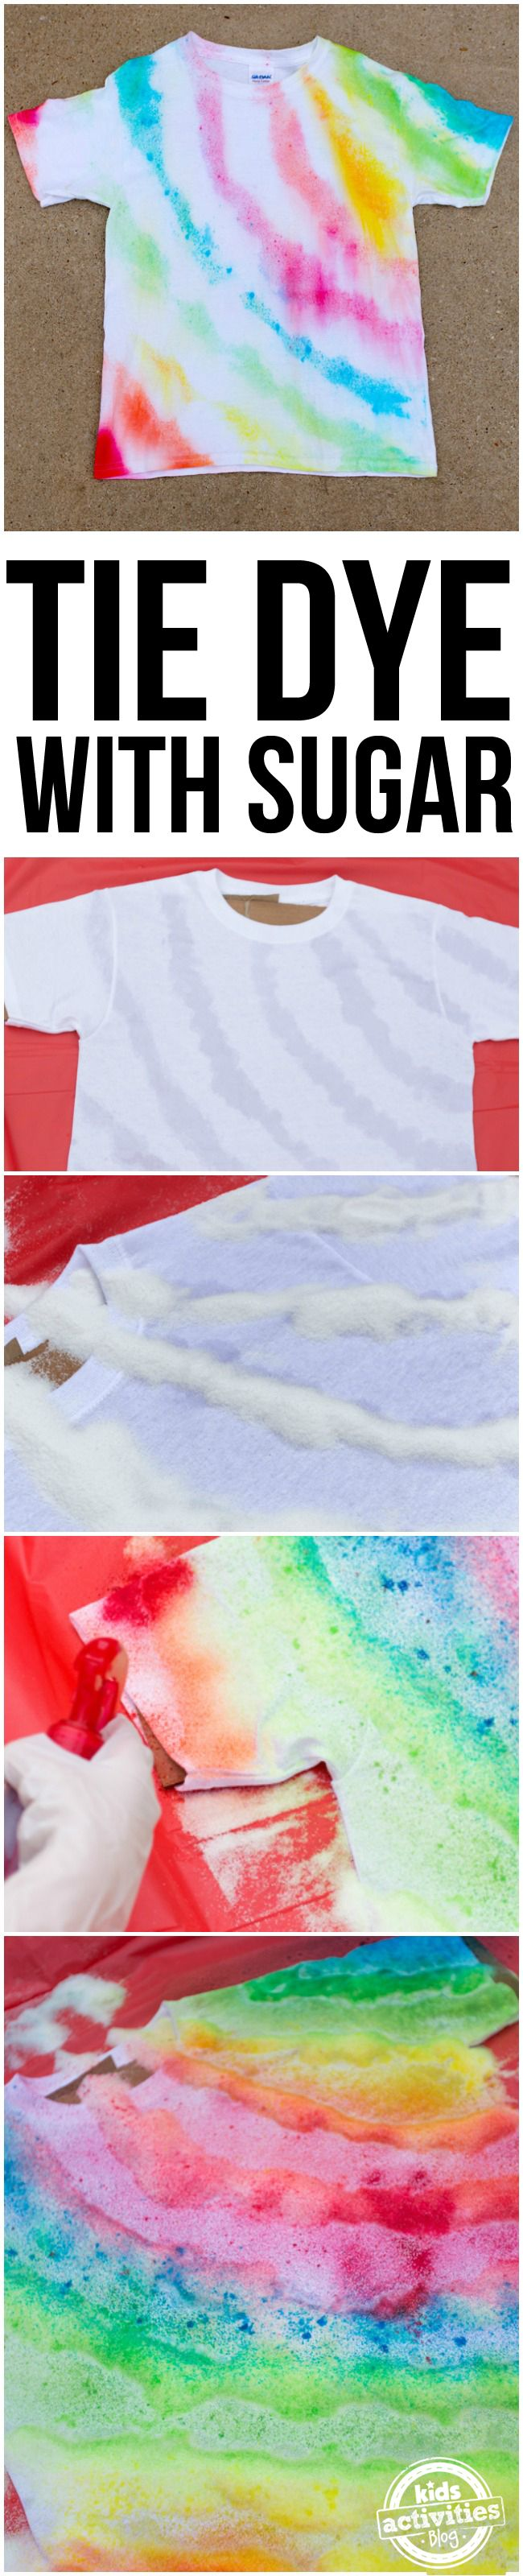 Make tie dye shirts using sugar! This fun and simple activity is perfect for kids! @imperialsugar